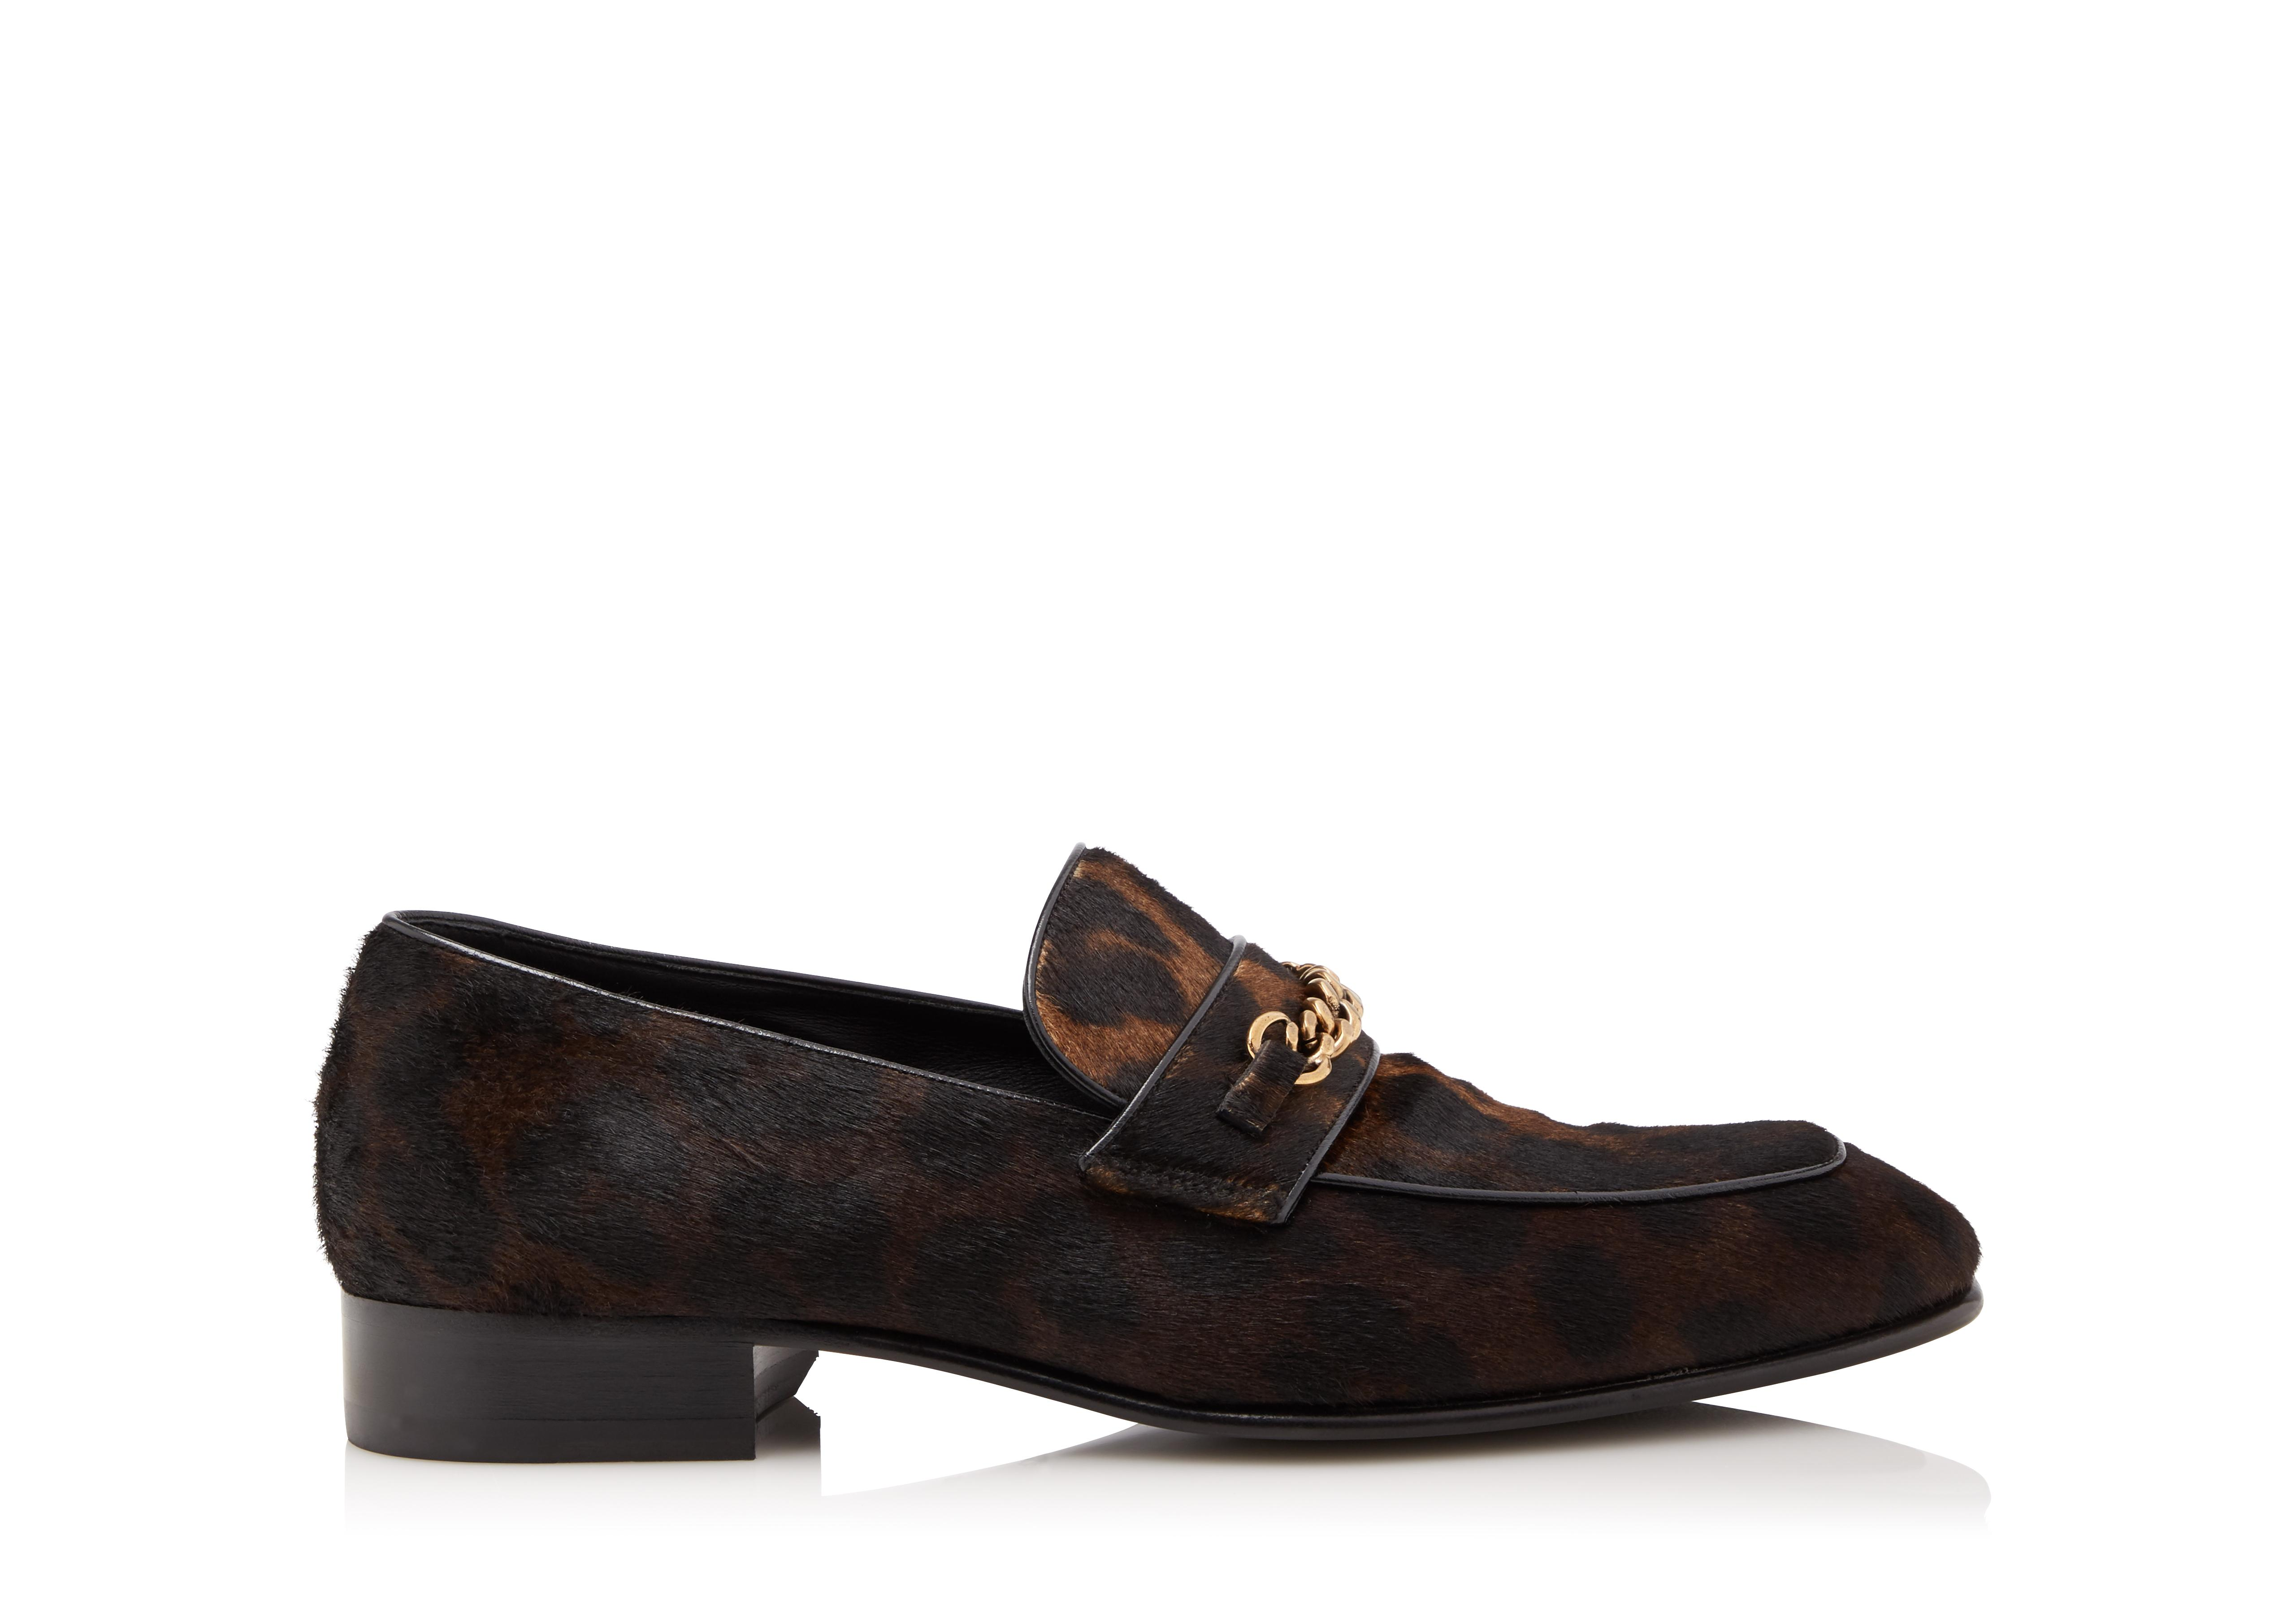 PANTHER LEEDS CHAIN LOAFER A thumbnail